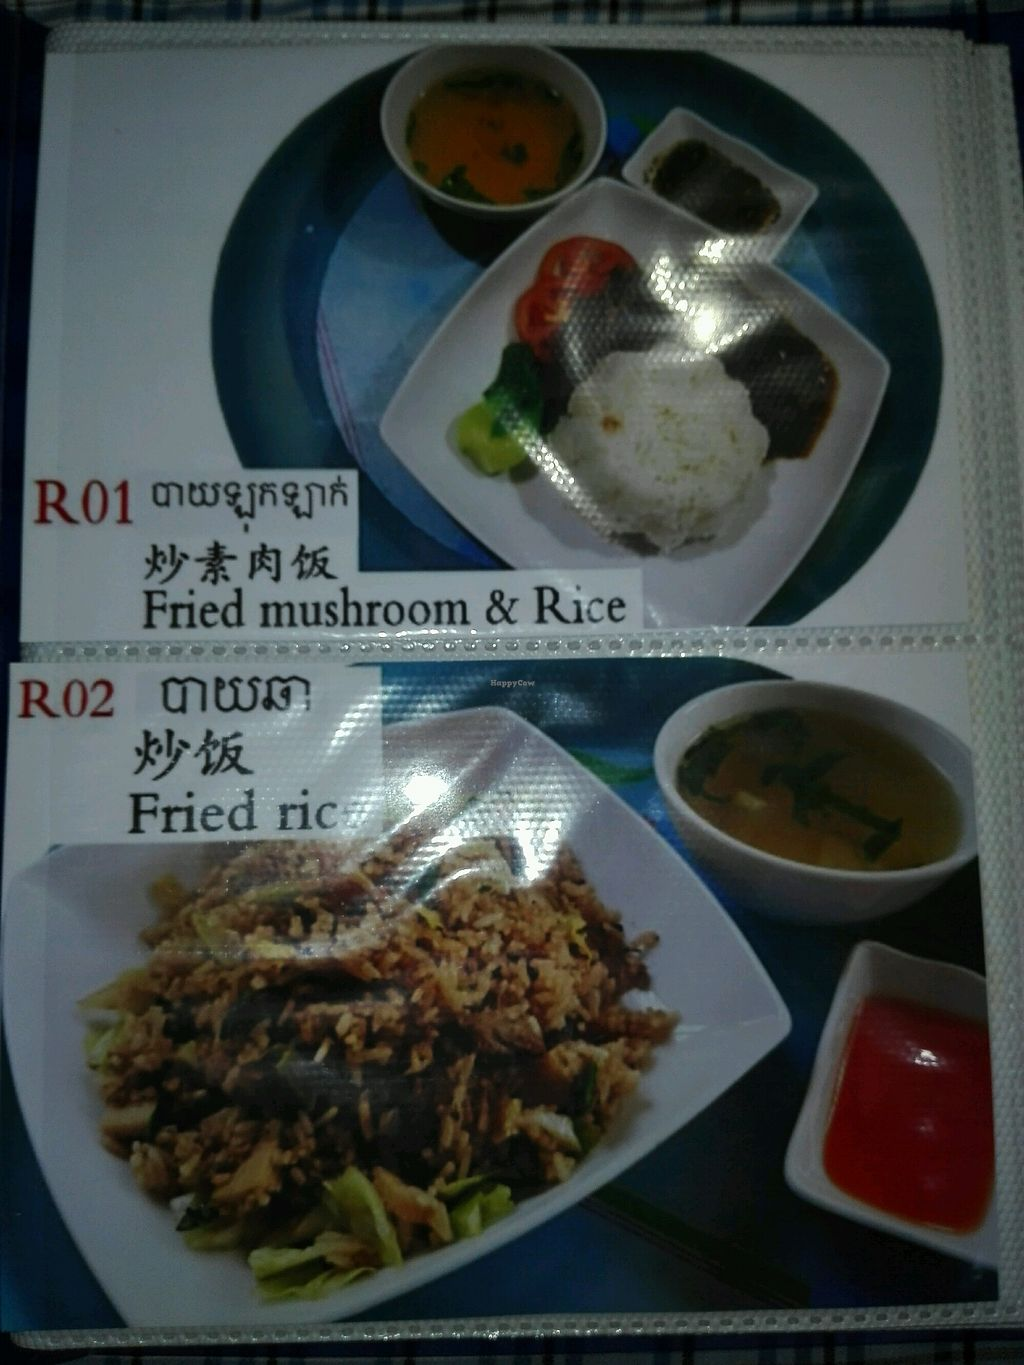 """Photo of Mercy Vegetarian  by <a href=""""/members/profile/Seksan"""">Seksan</a> <br/>Rice Menu <br/> March 16, 2018  - <a href='/contact/abuse/image/107110/371353'>Report</a>"""